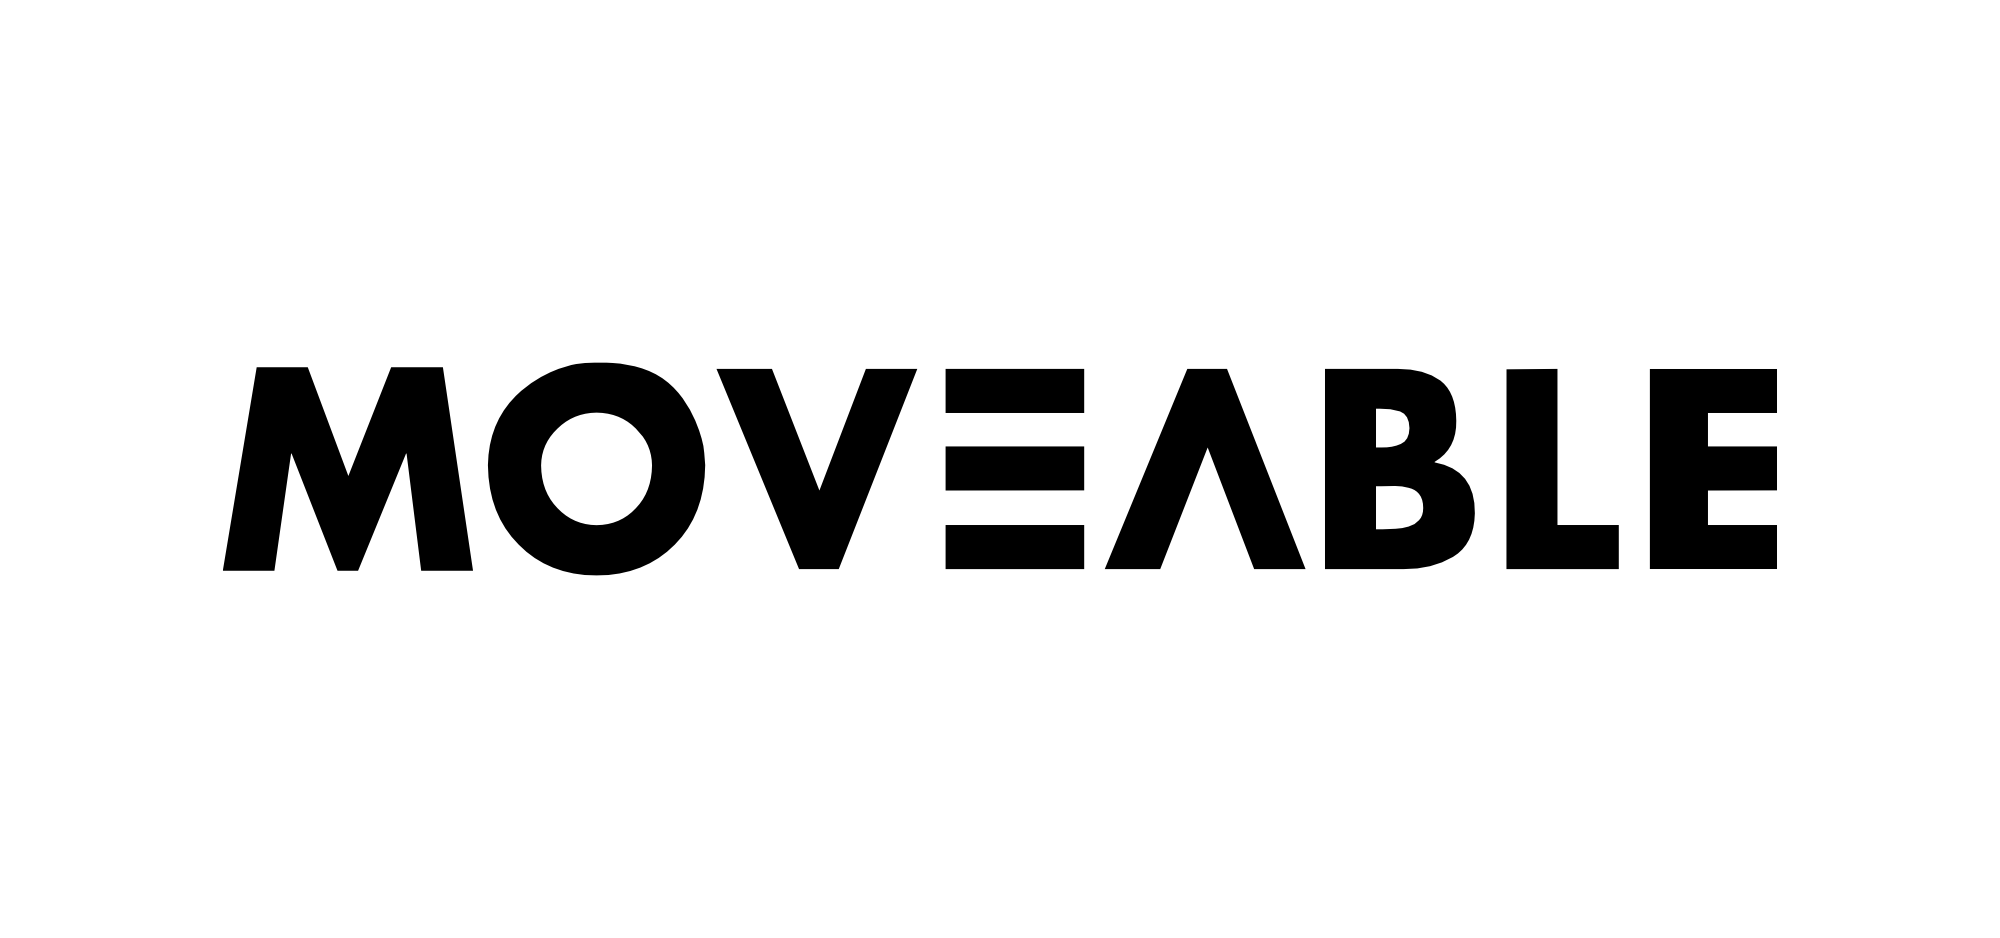 Logo design for Toyota x VICE's   Moveable   on the future of automation from Motherboard.